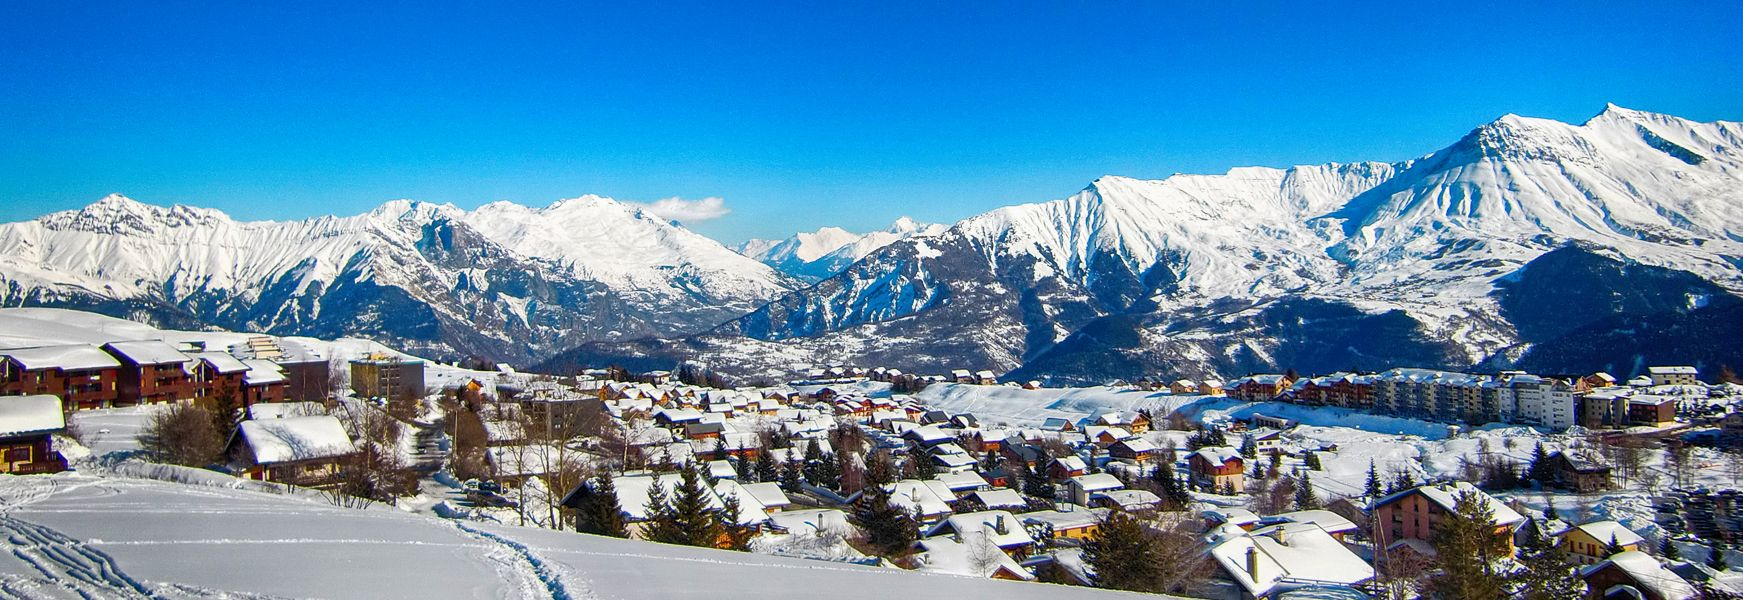 Location Ski Intersport La Toussuire